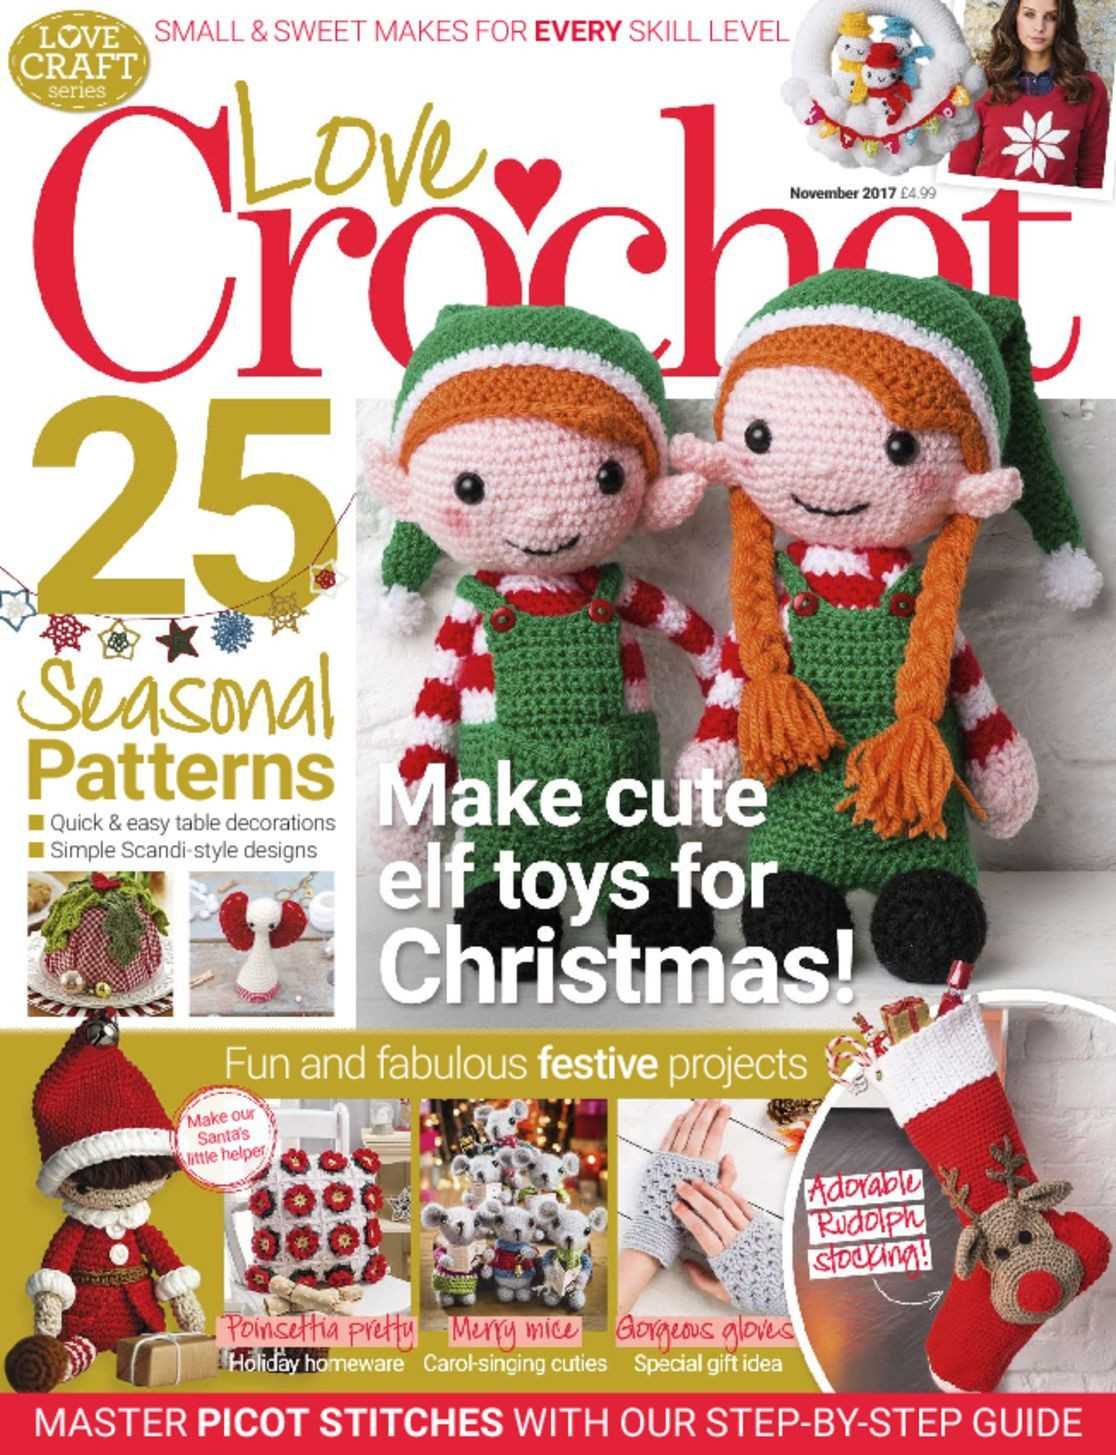 Luxury Love Crochet Magazine Digital Discountmags Love Crochet Magazine Of Wonderful 48 Pictures Love Crochet Magazine